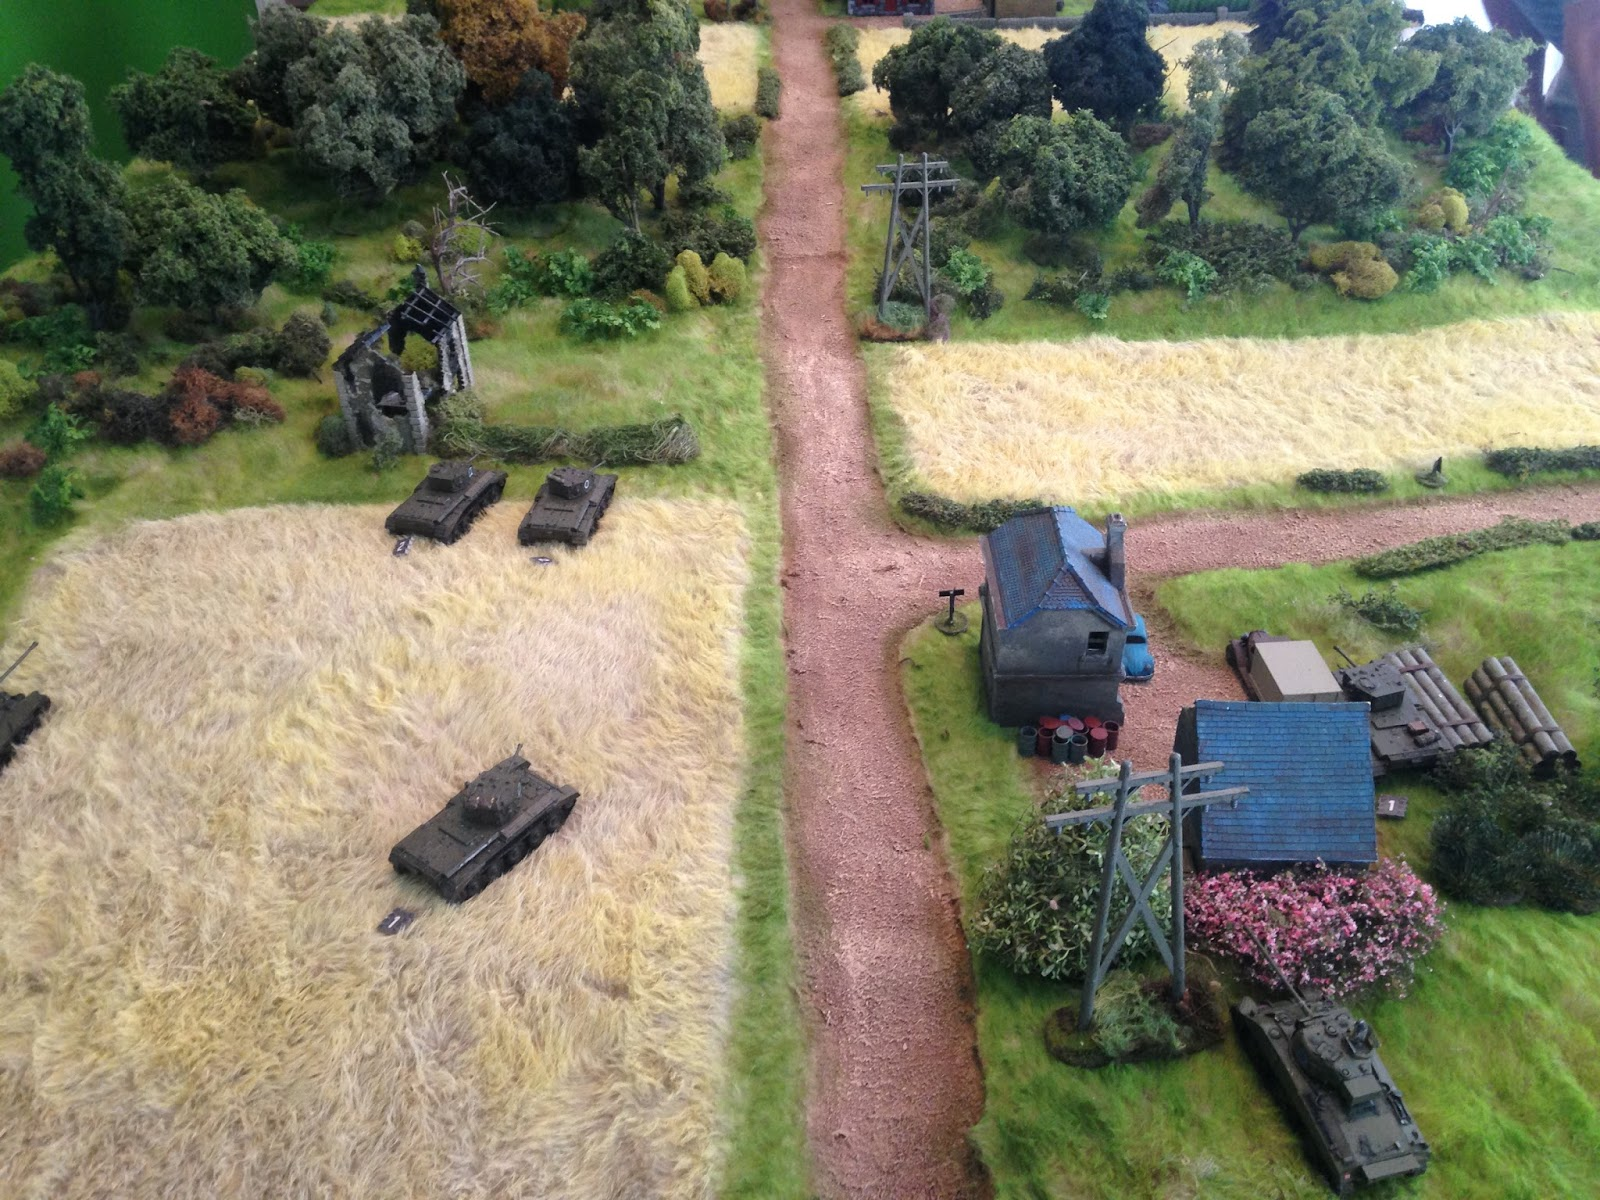 Miniature Wargaming with Spudnick: AAR: Tanks! Testing Out